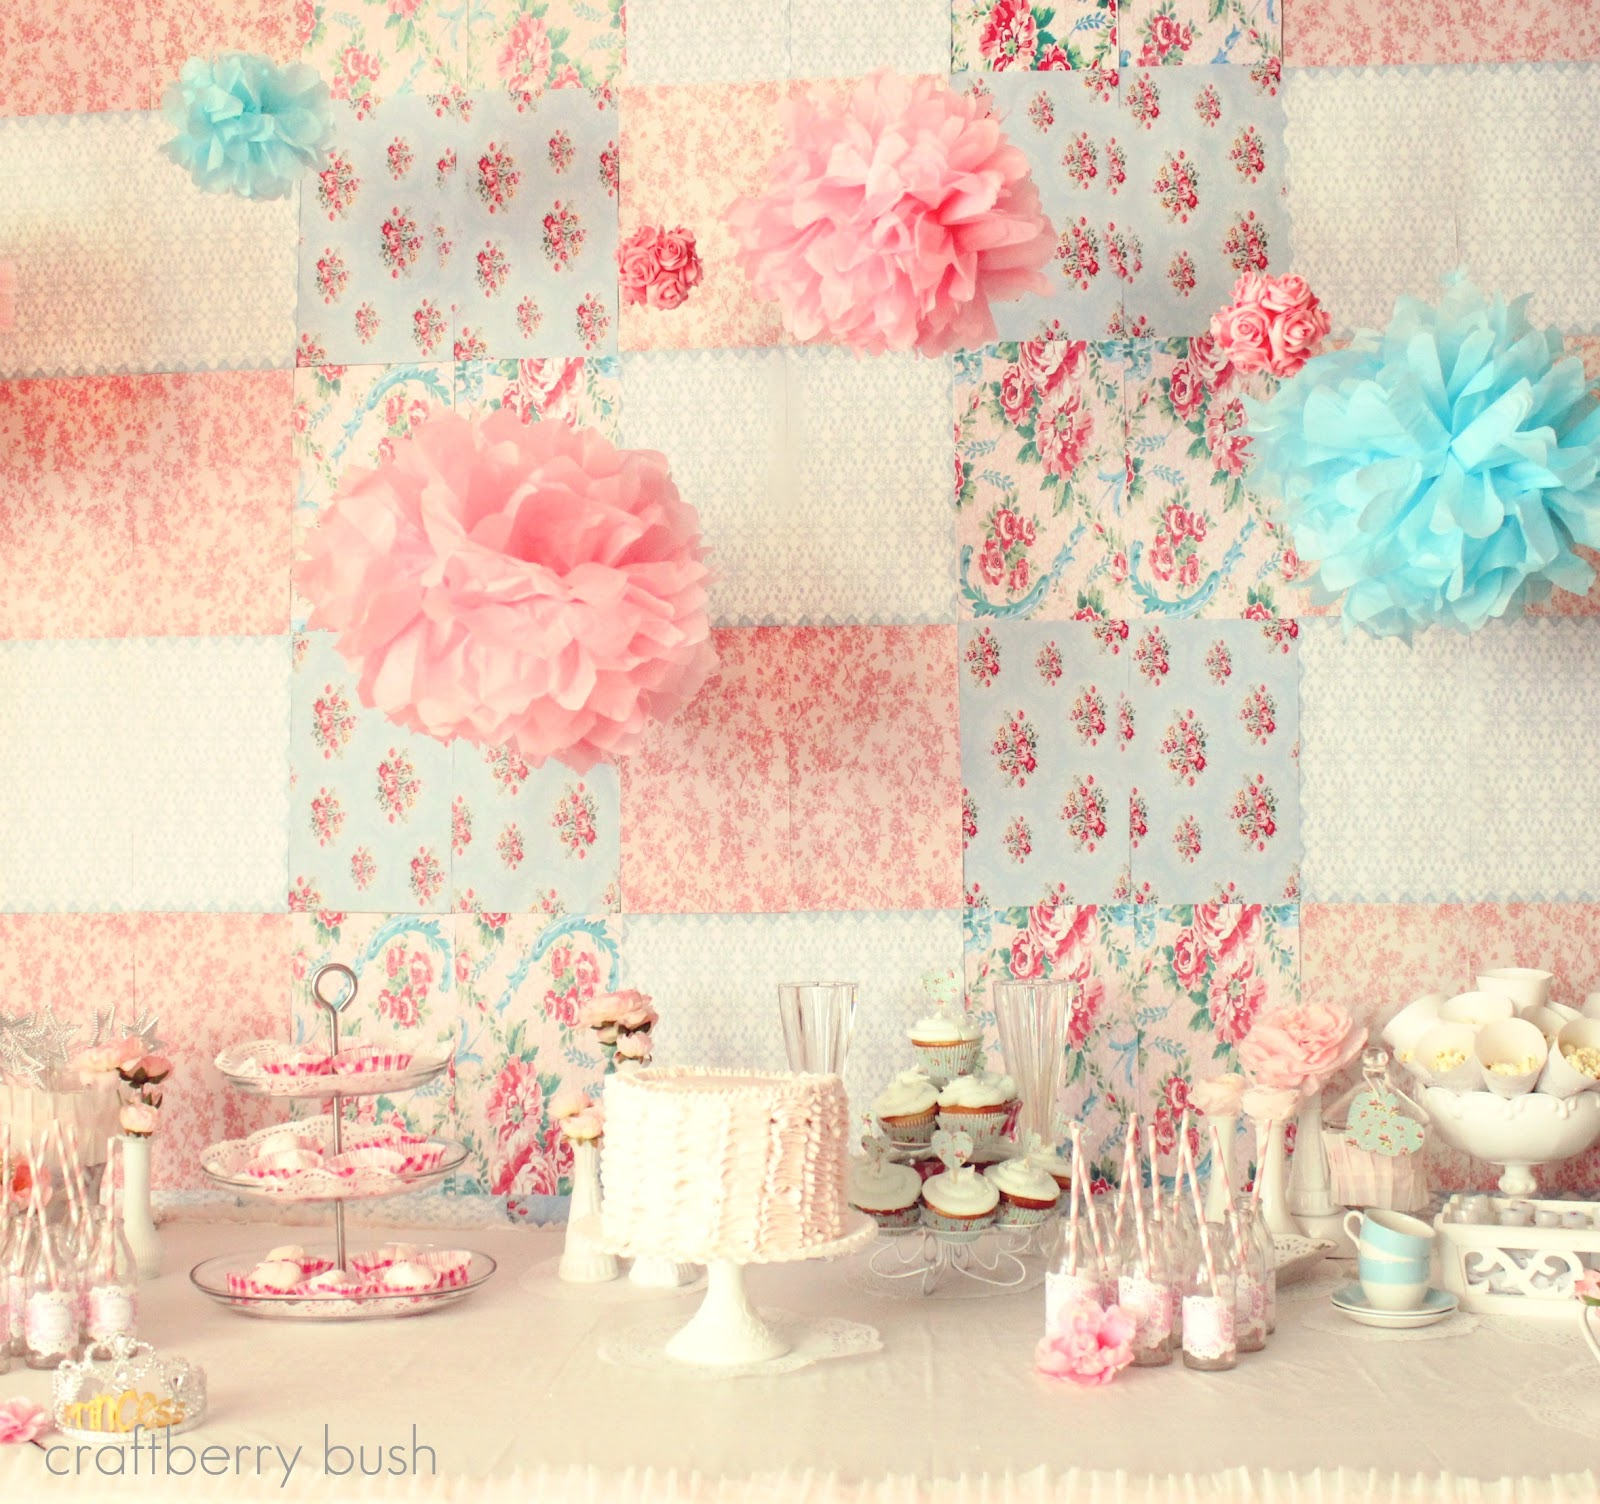 Crafty Secrets Heartwarming Vintage Ideas and Tips See